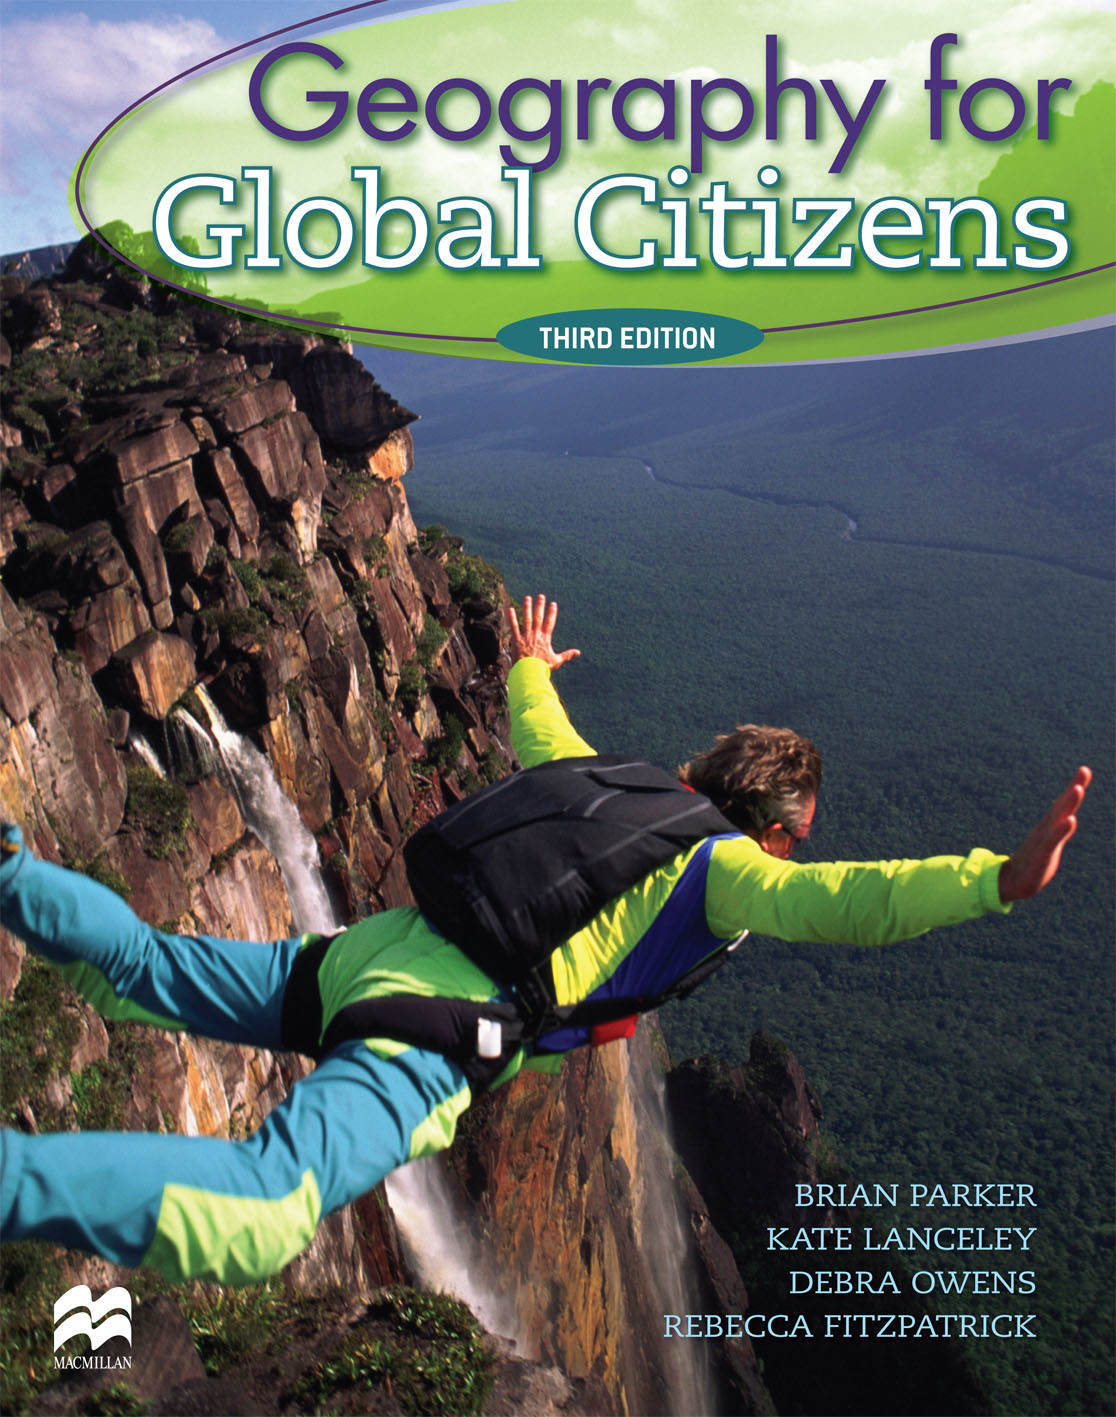 Geography for global citizens third edition cd macmillan geography for global citizens third edition cd sciox Images